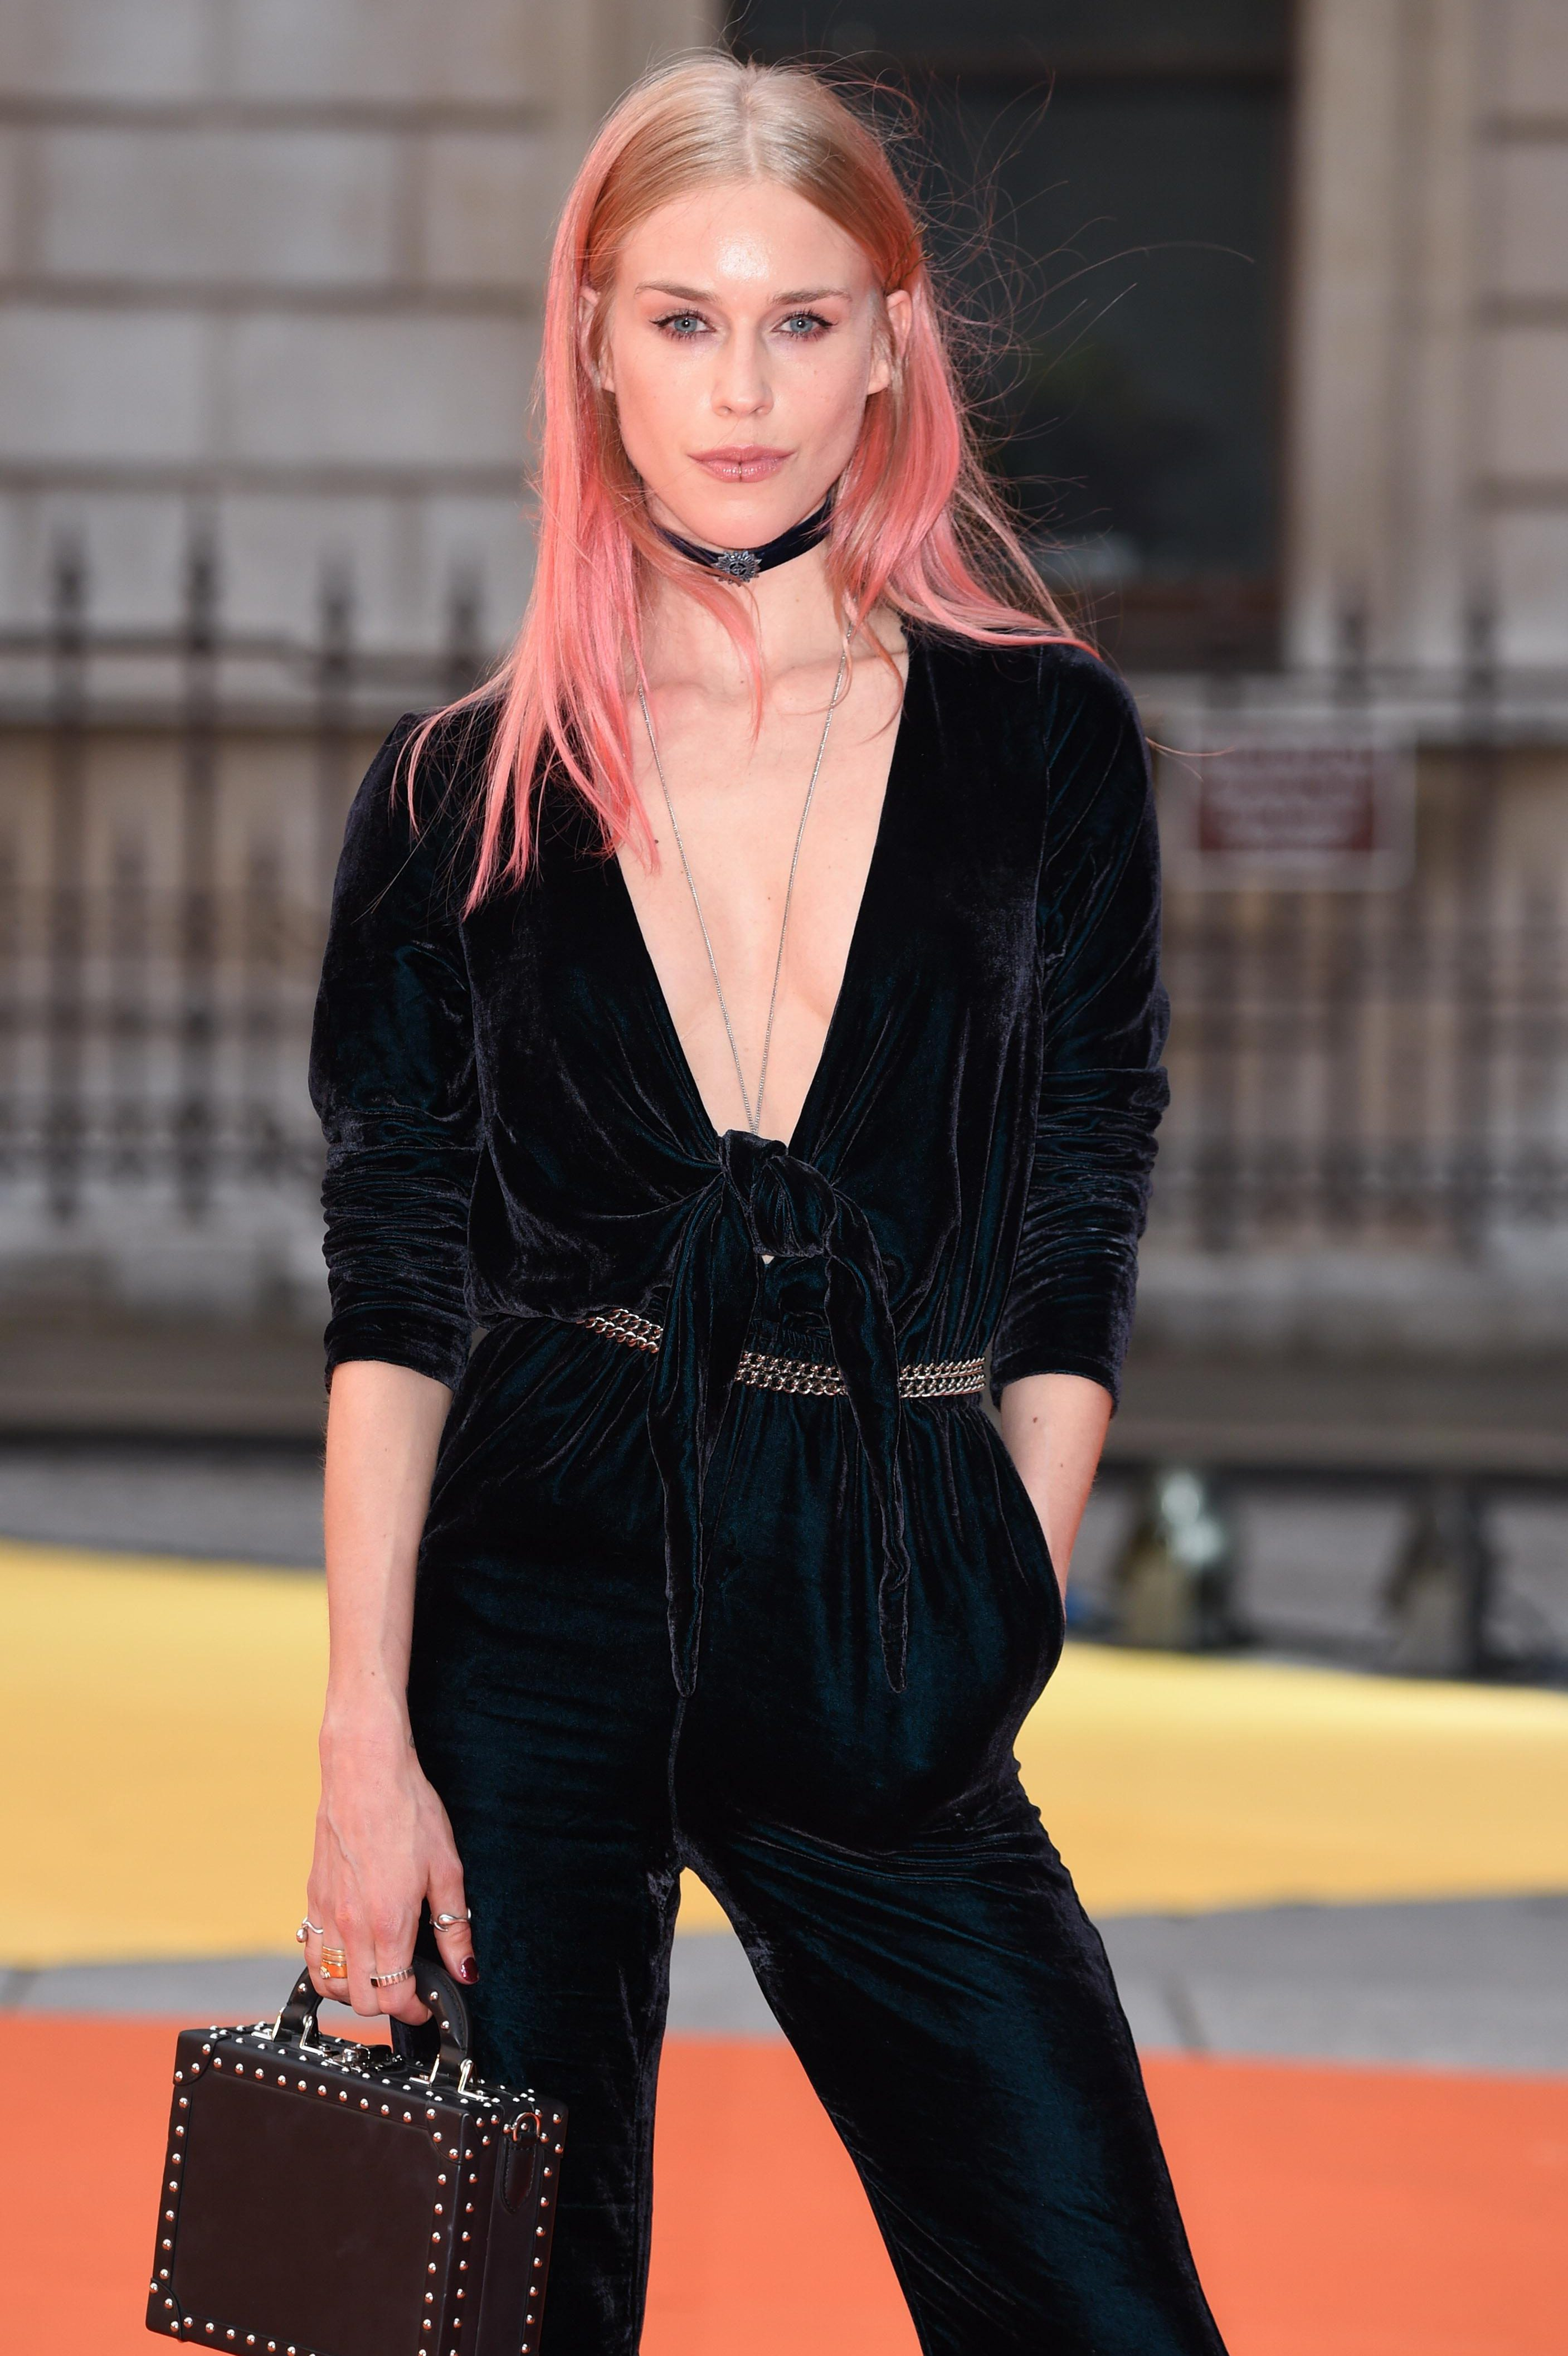 Images Lady Mary Charteris nude photos 2019